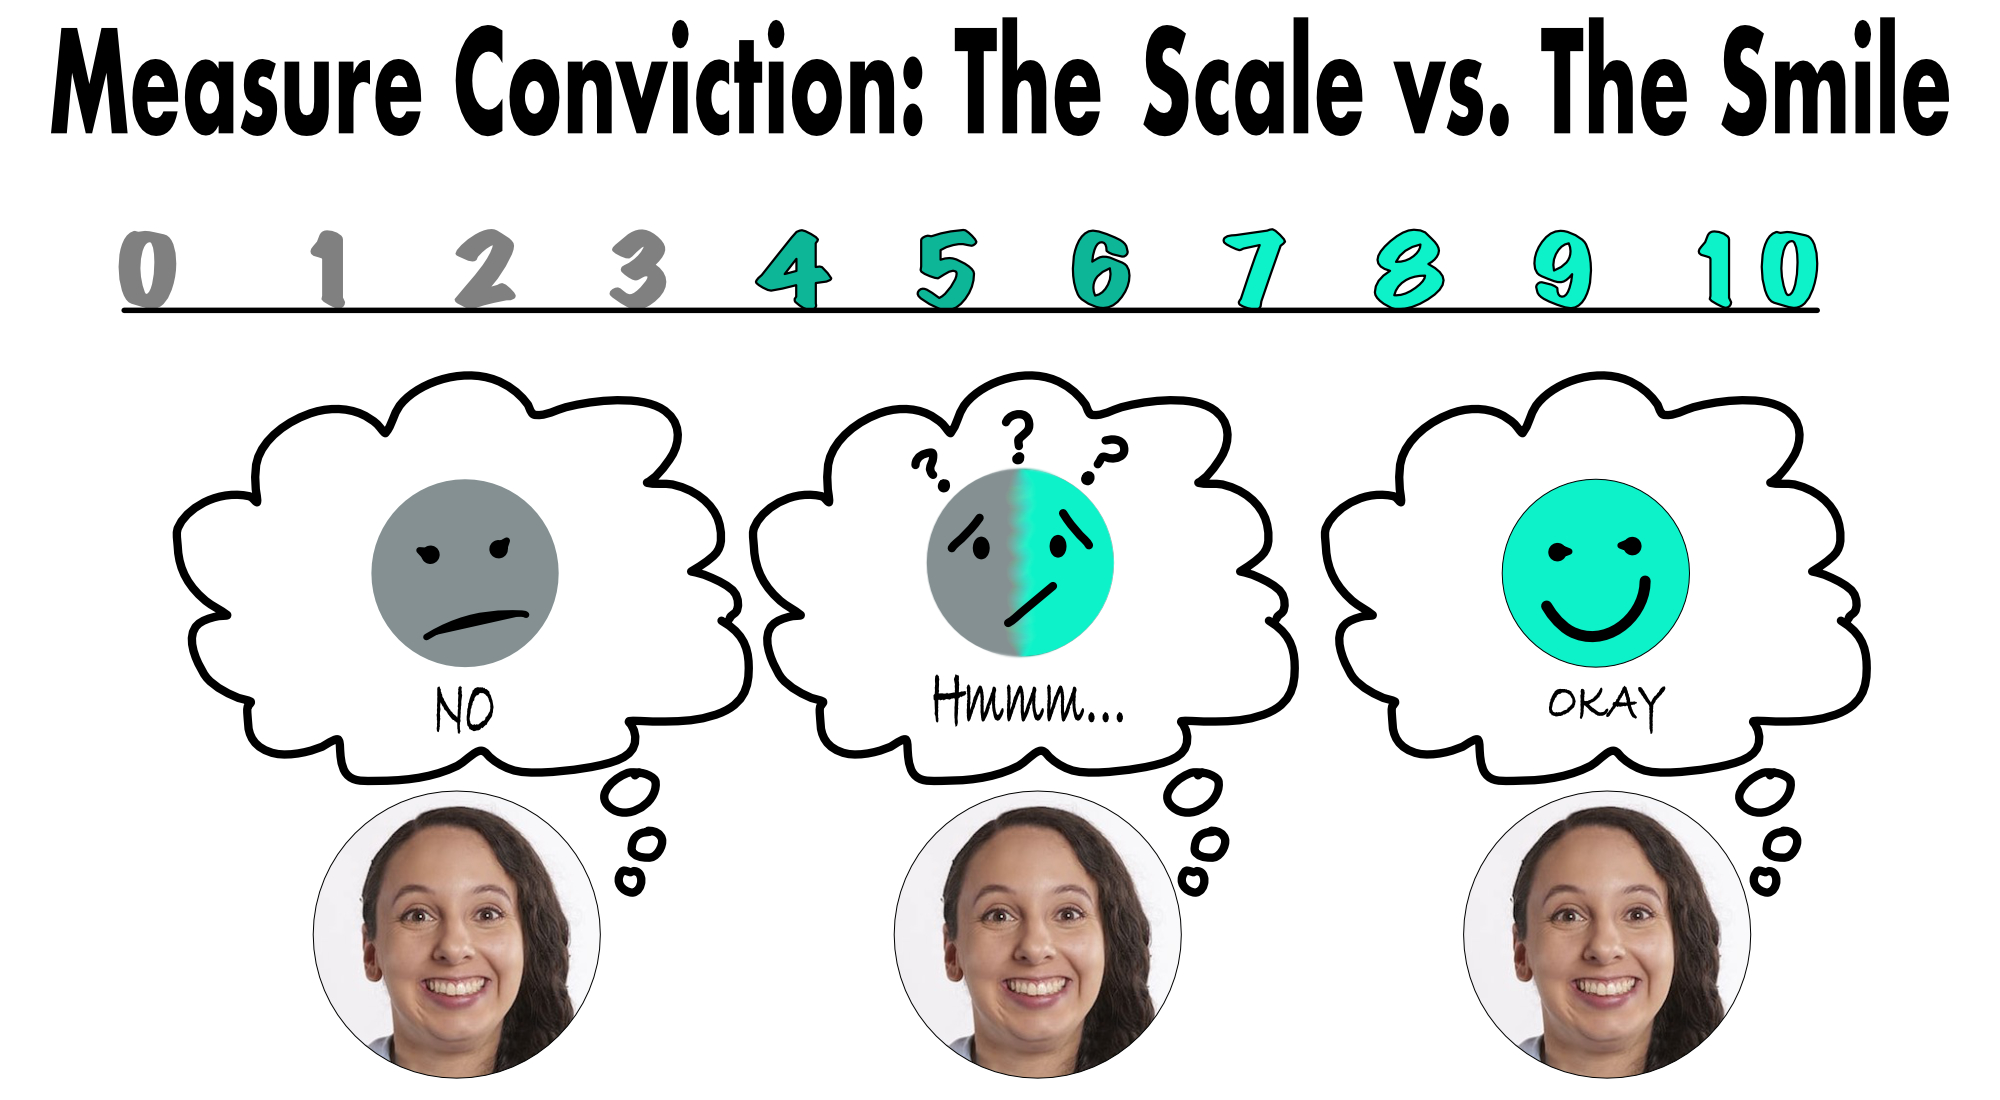 ahs conviction scale vs smile 2018